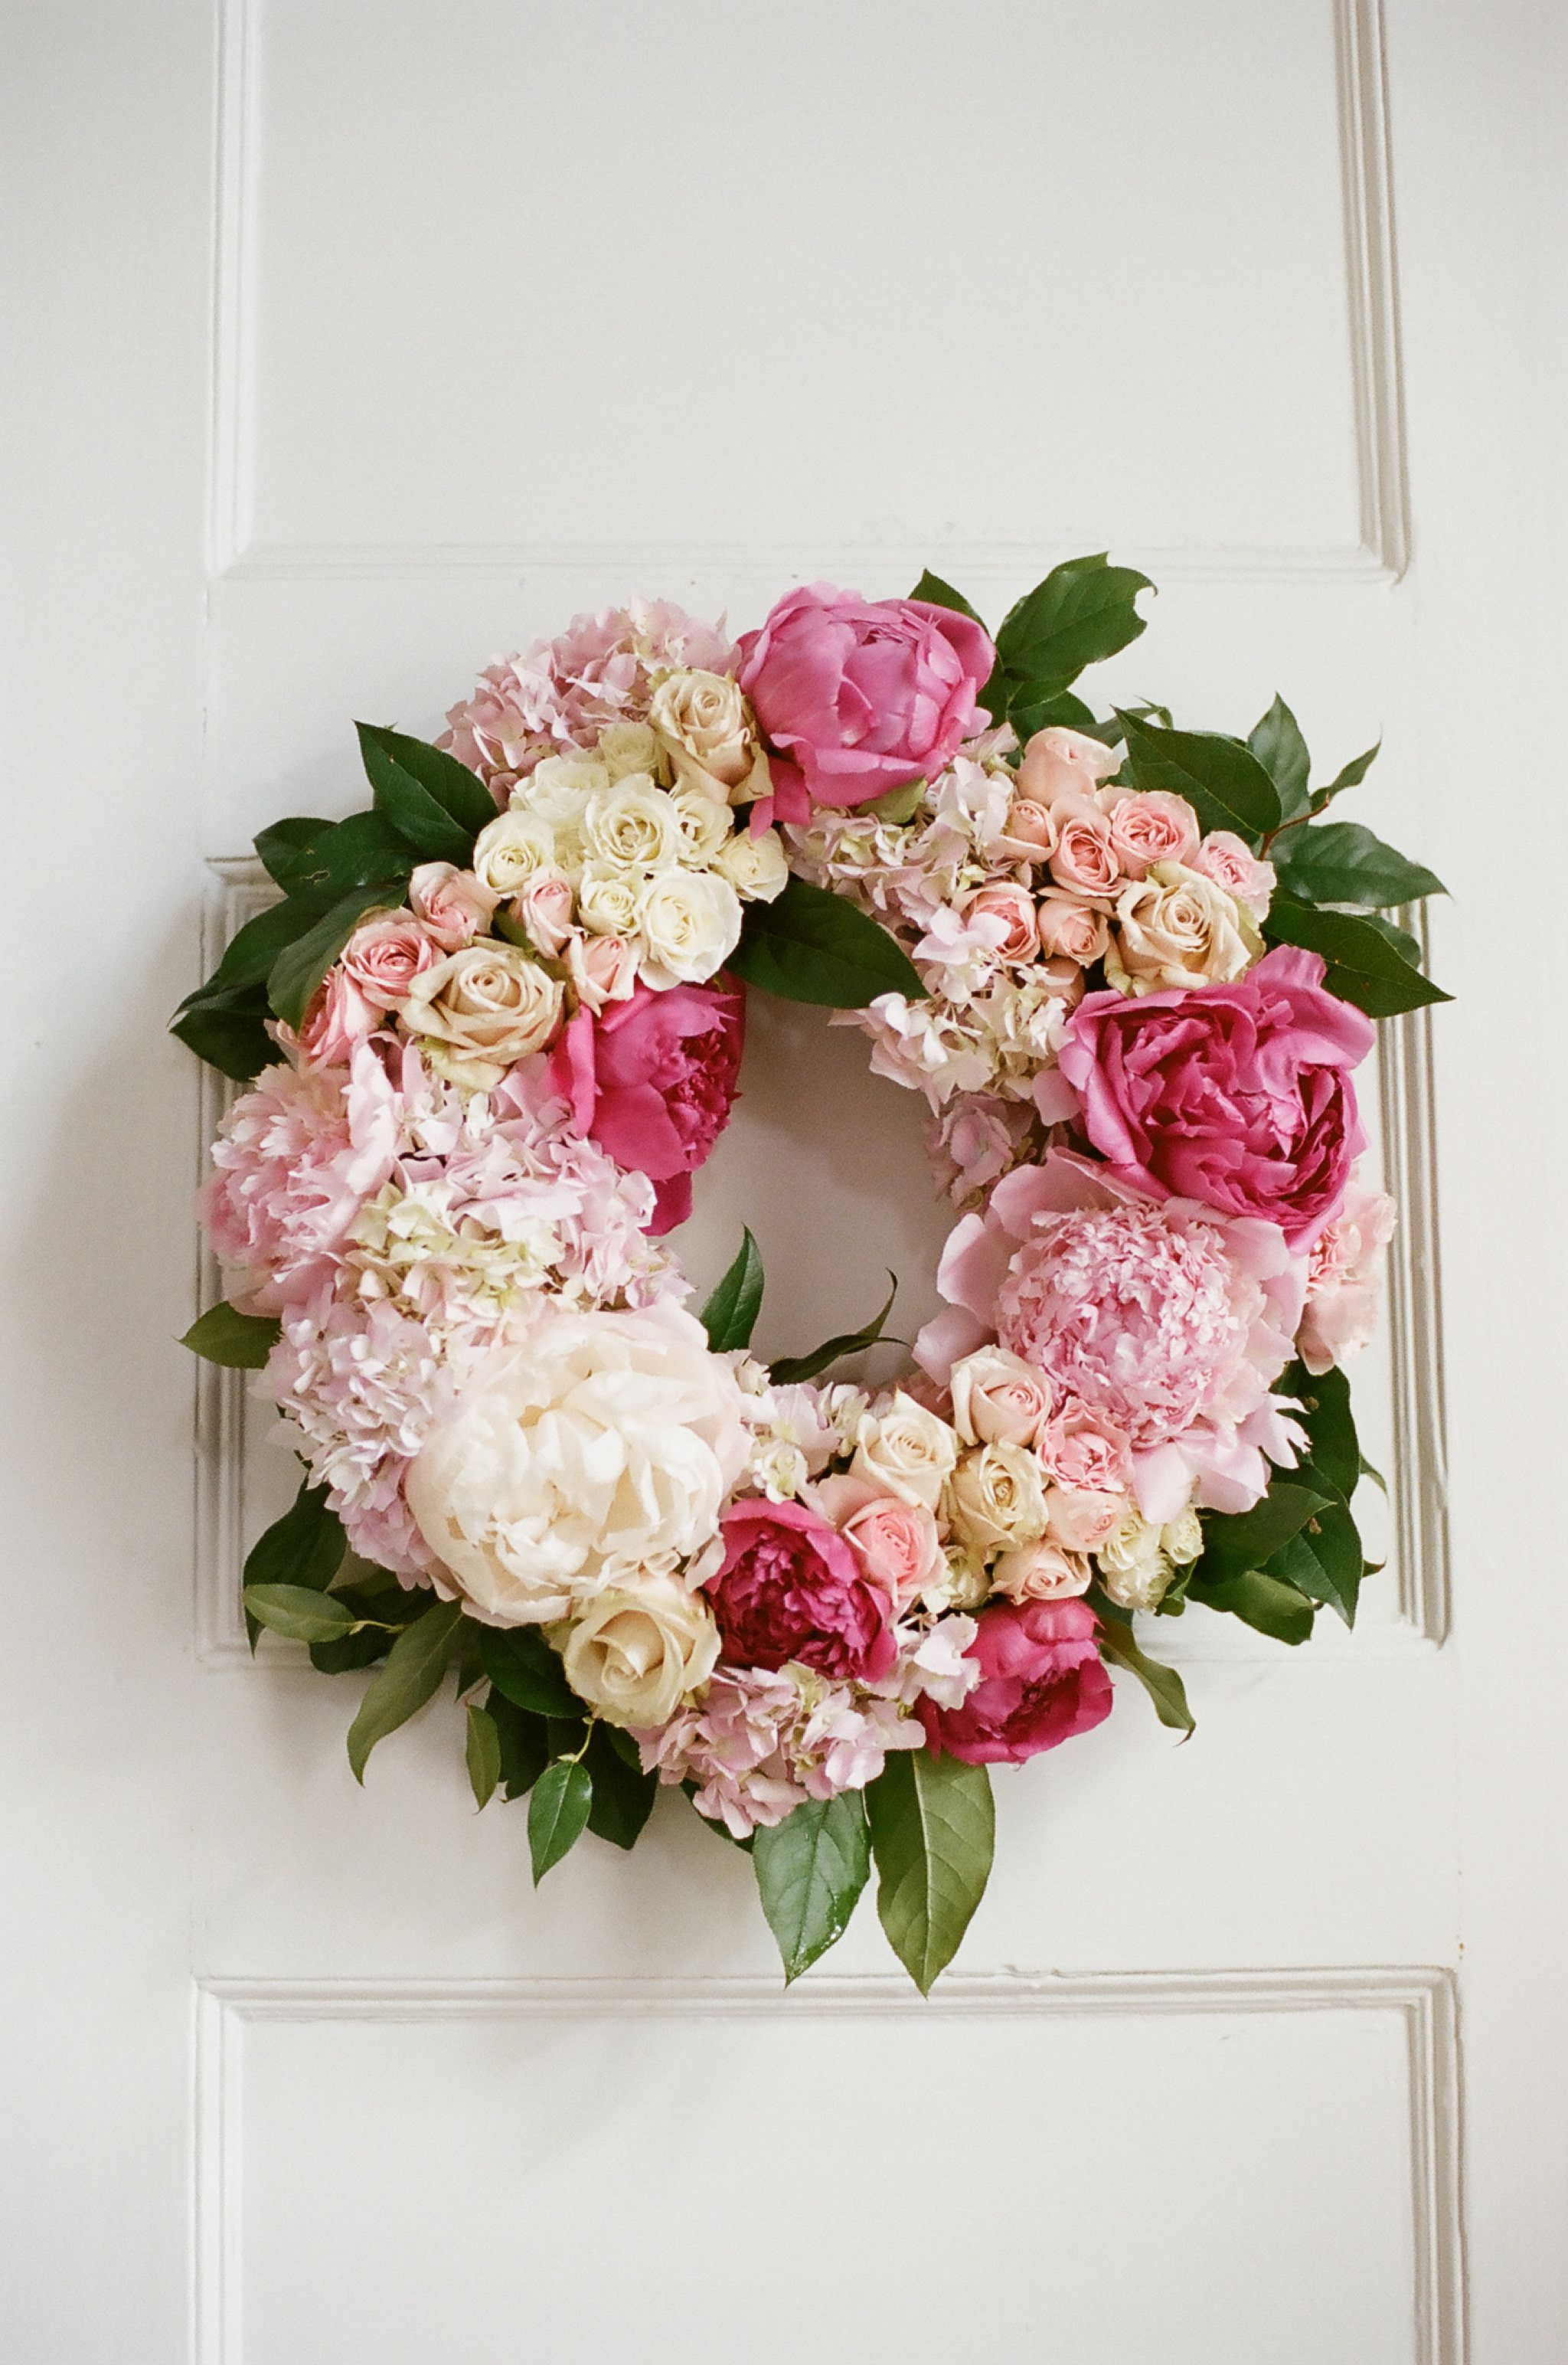 White and pink wreath on church door with greenery peony and rose flowers